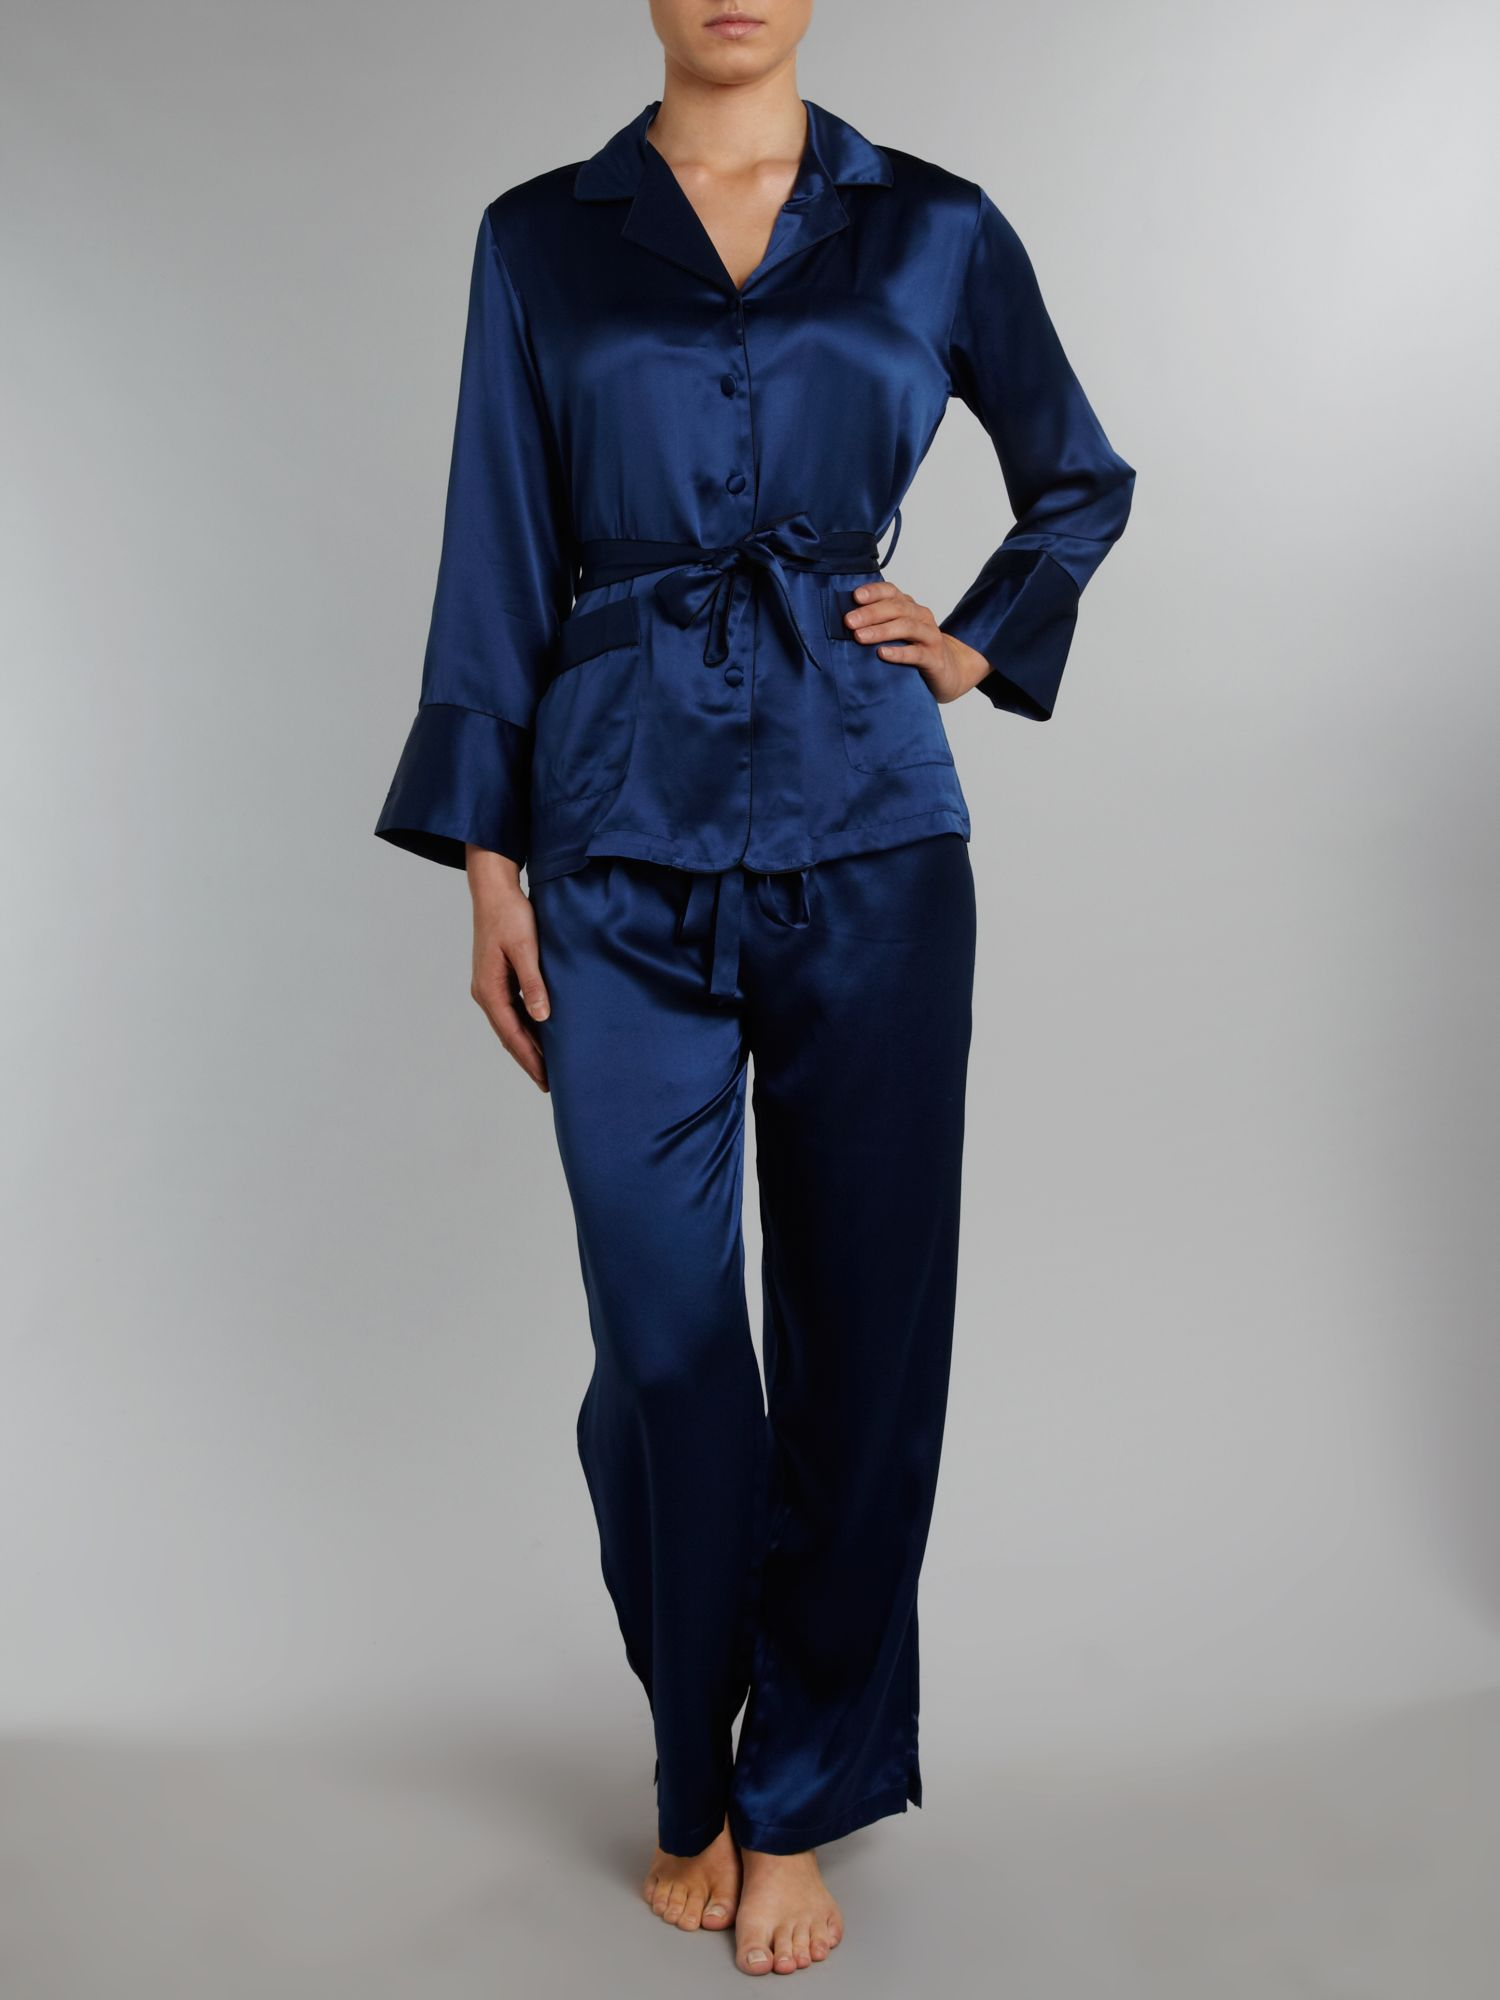 Jeanne silk pjs with contrast piping - exclusive